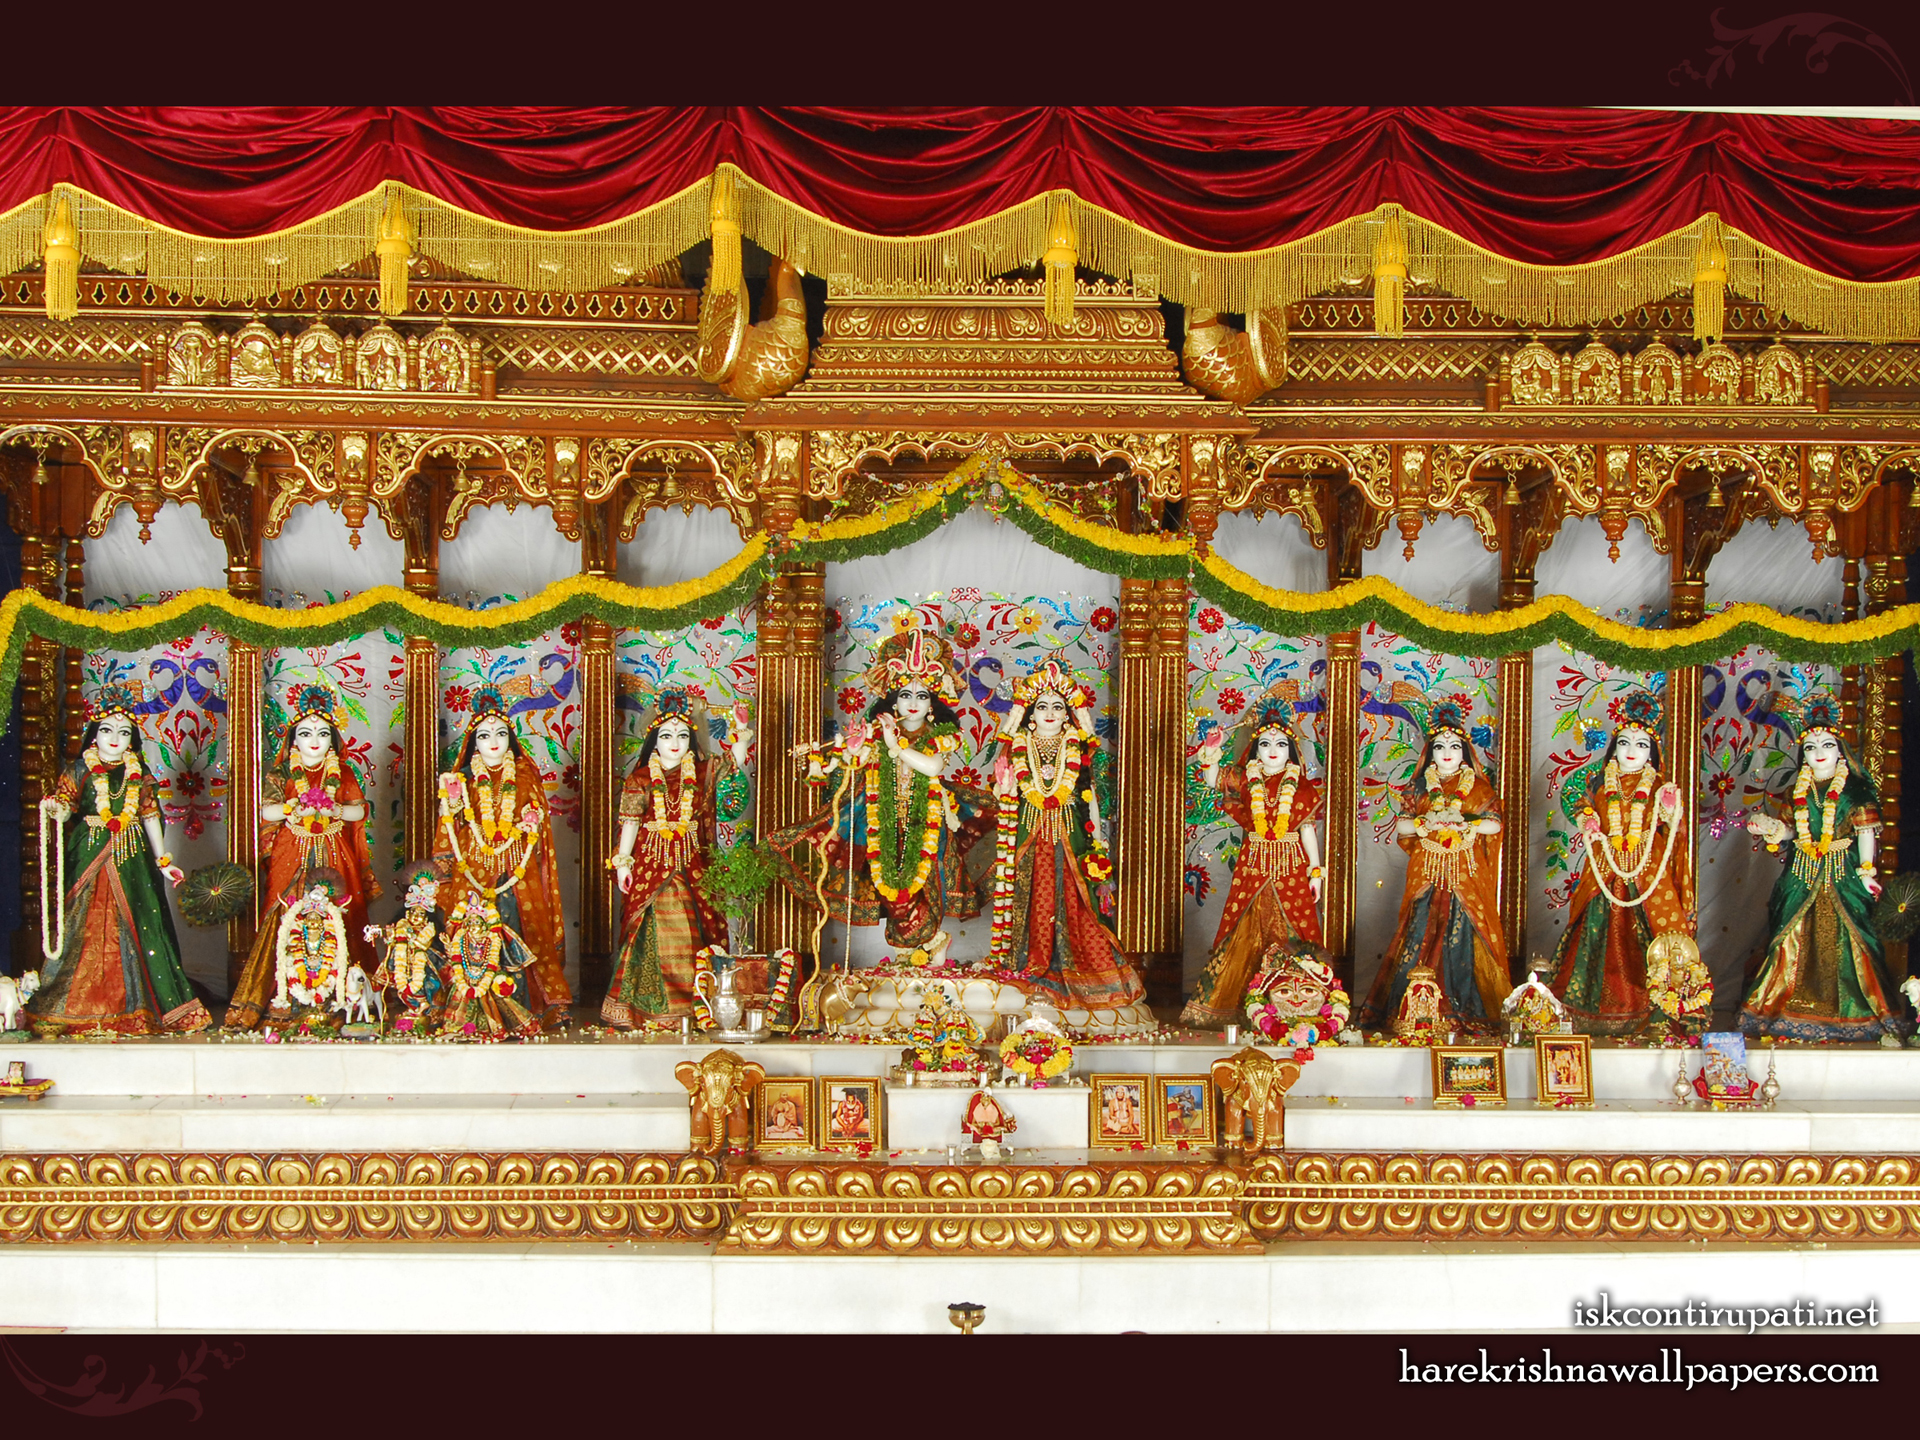 Sri Sri Radha Govinda with Ashtasakhi Wallpaper (002) Size 1920x1440 Download